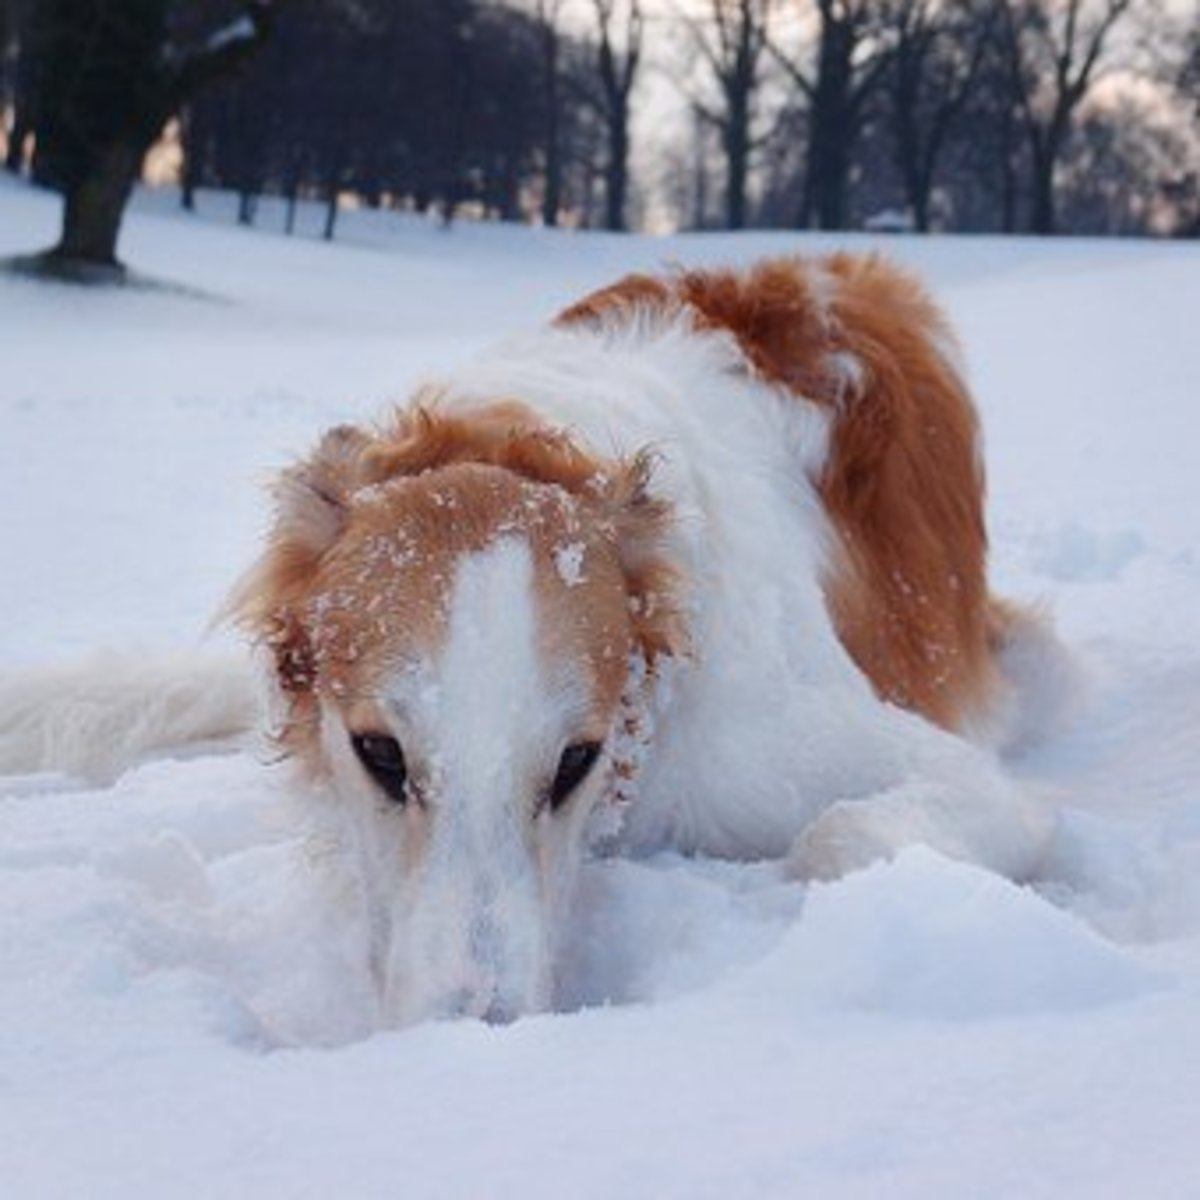 15 Unique Russian Names for Your Borzoi from Slavic Mythology